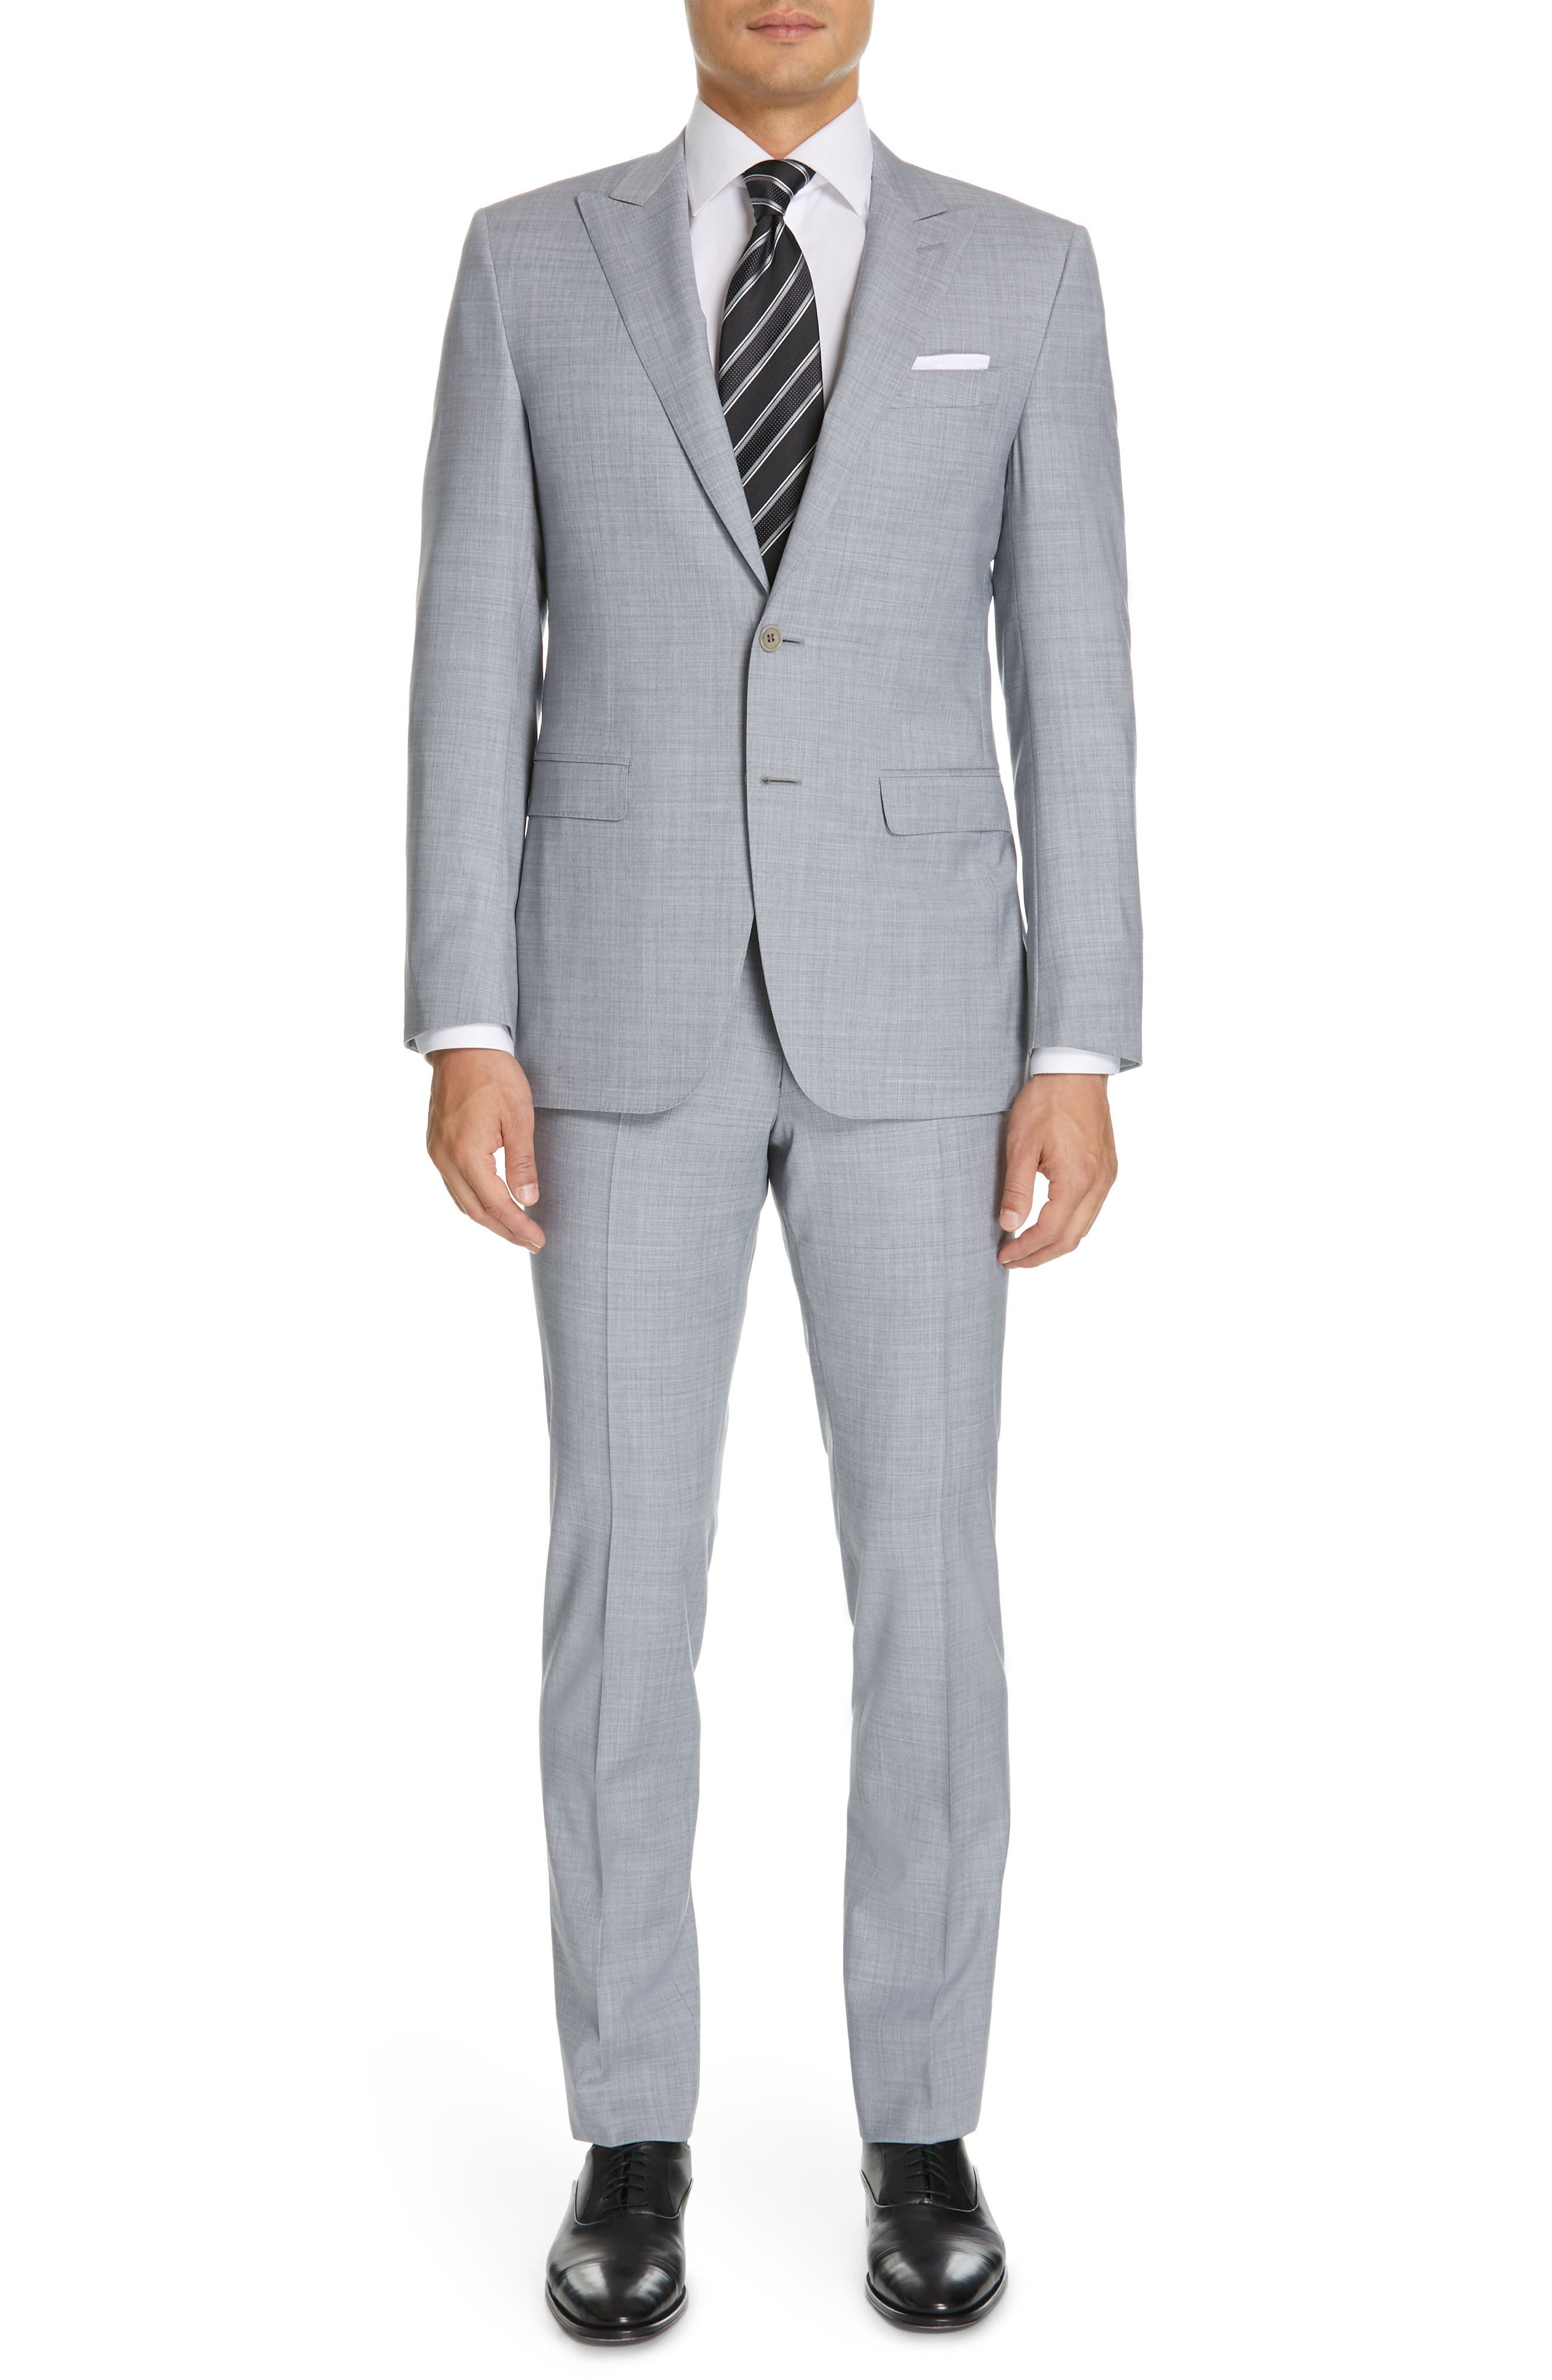 CANALI, Milano Classic Fit Solid Wool Suit, Main thumbnail 1, color, LIGHT GREY